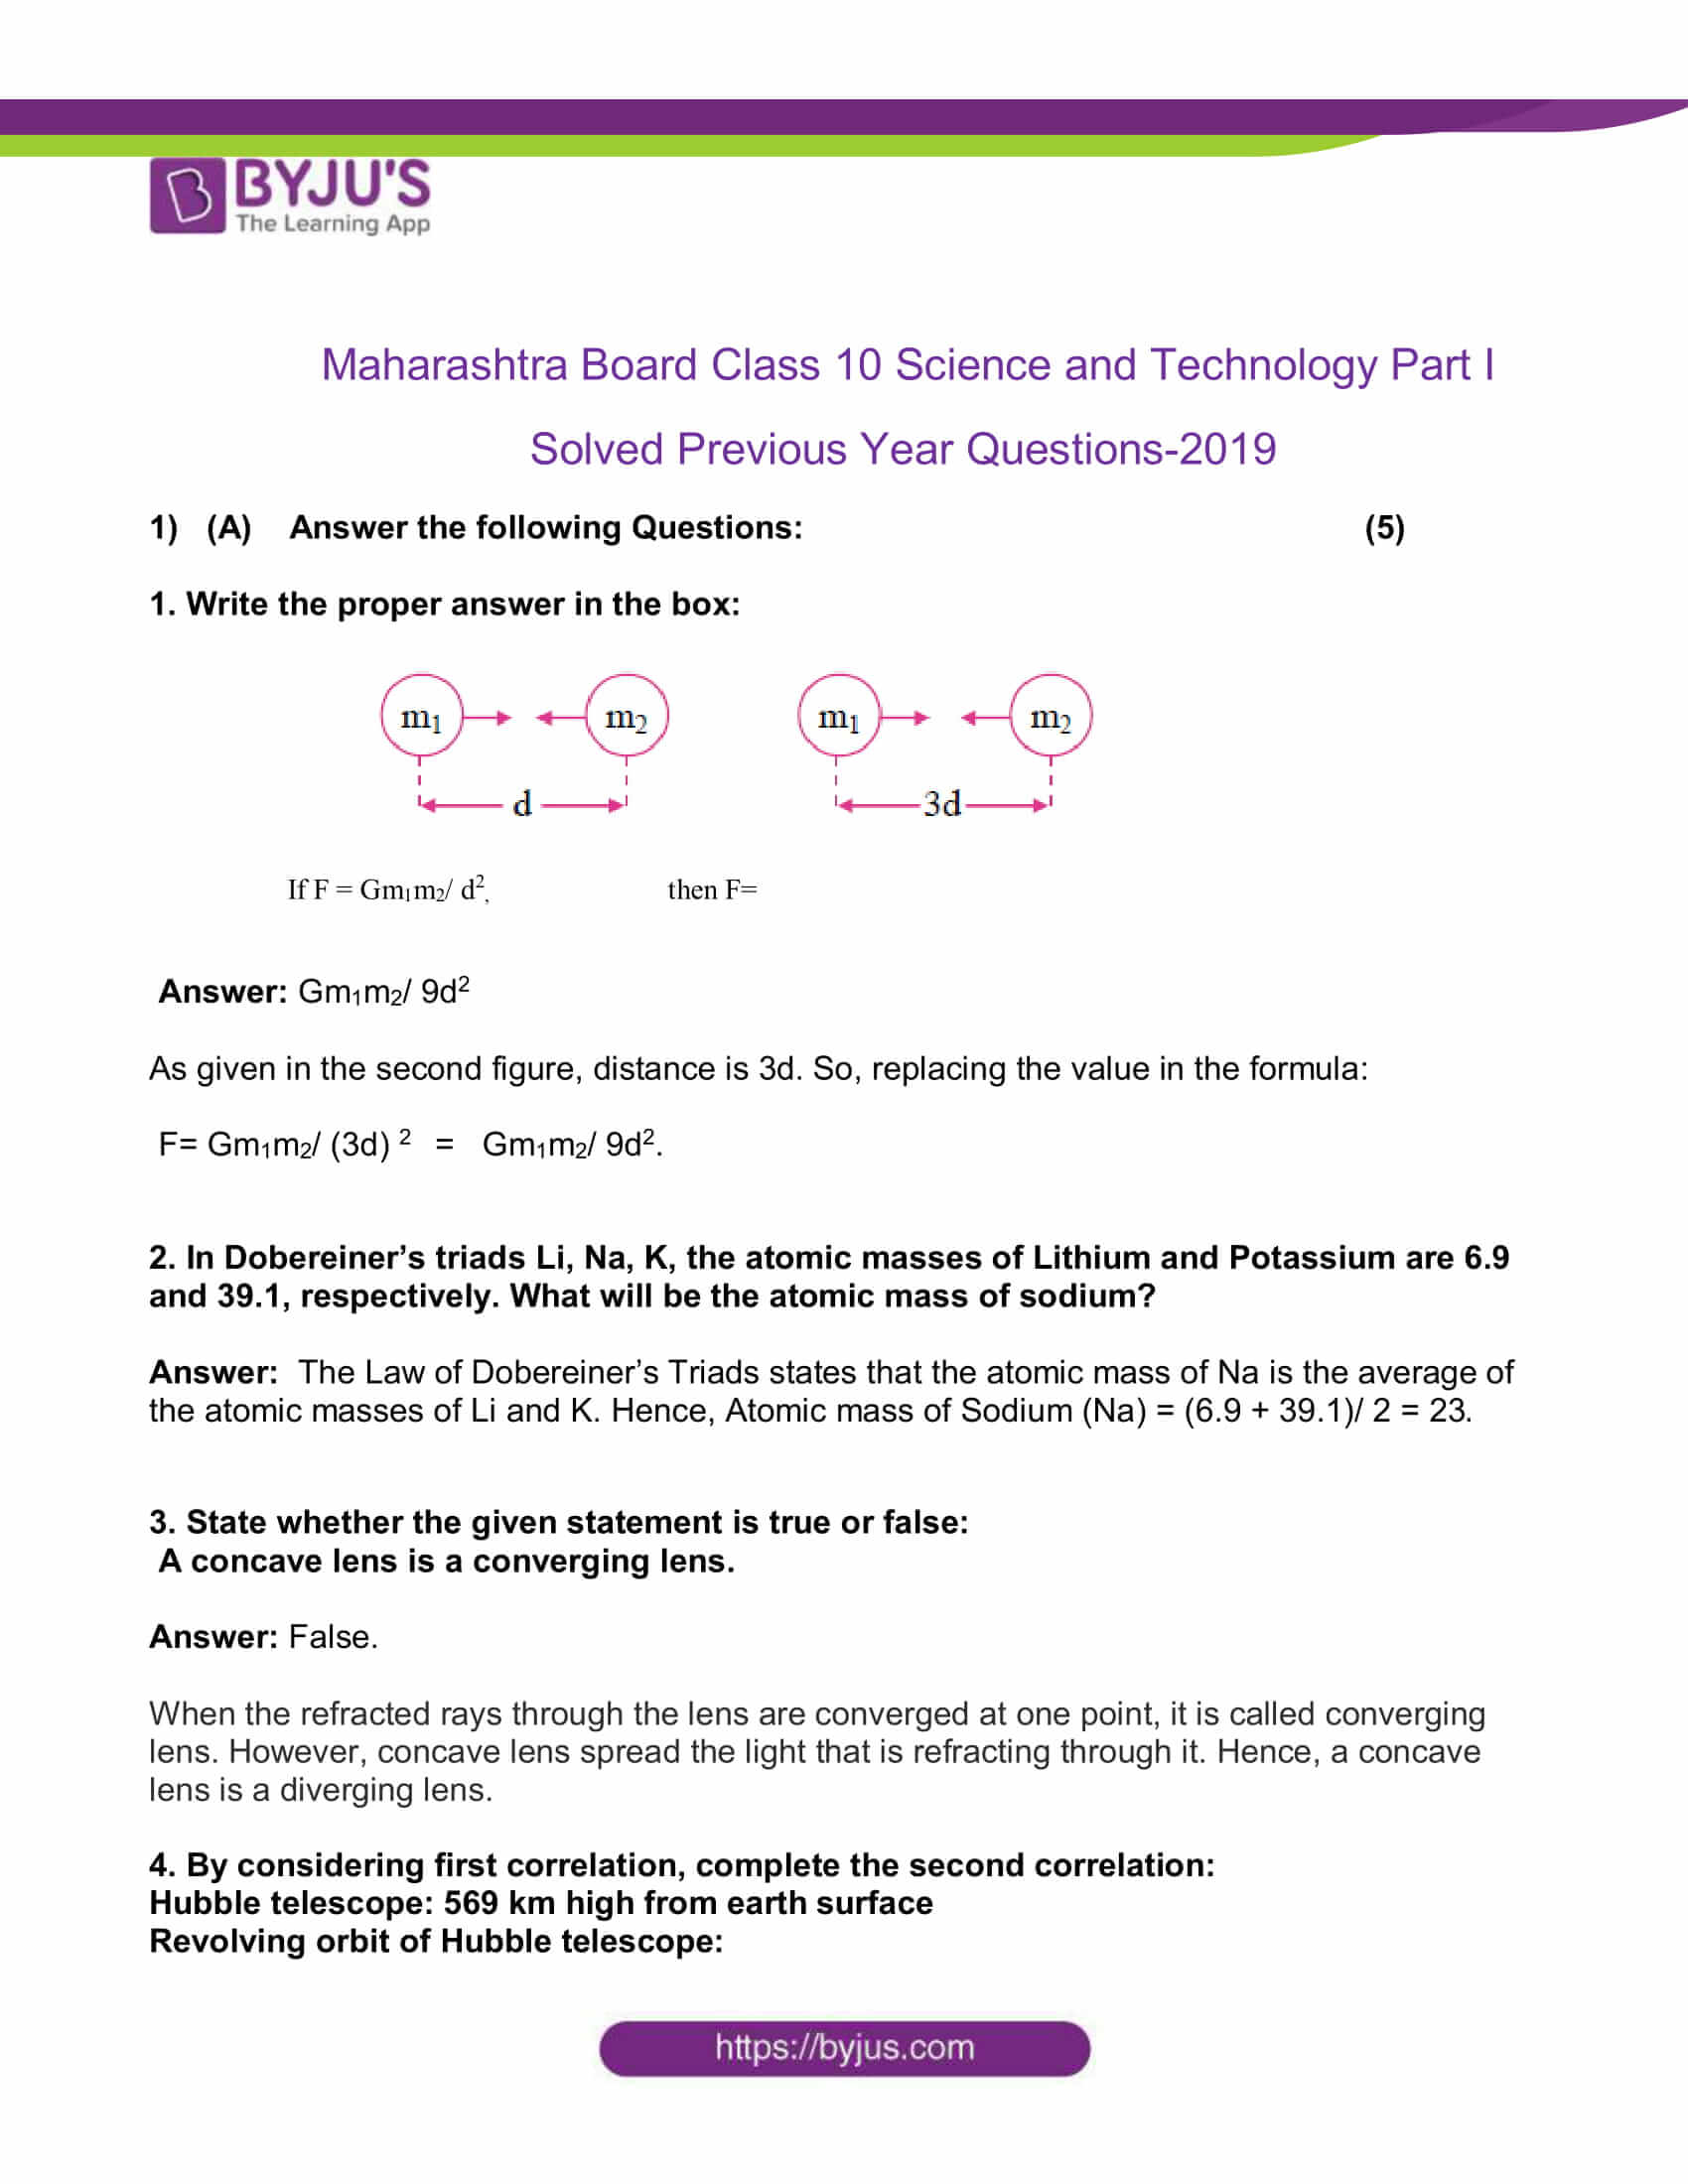 maharashtra board class 10 sci p1 previous year qs paper 2019 solved 01